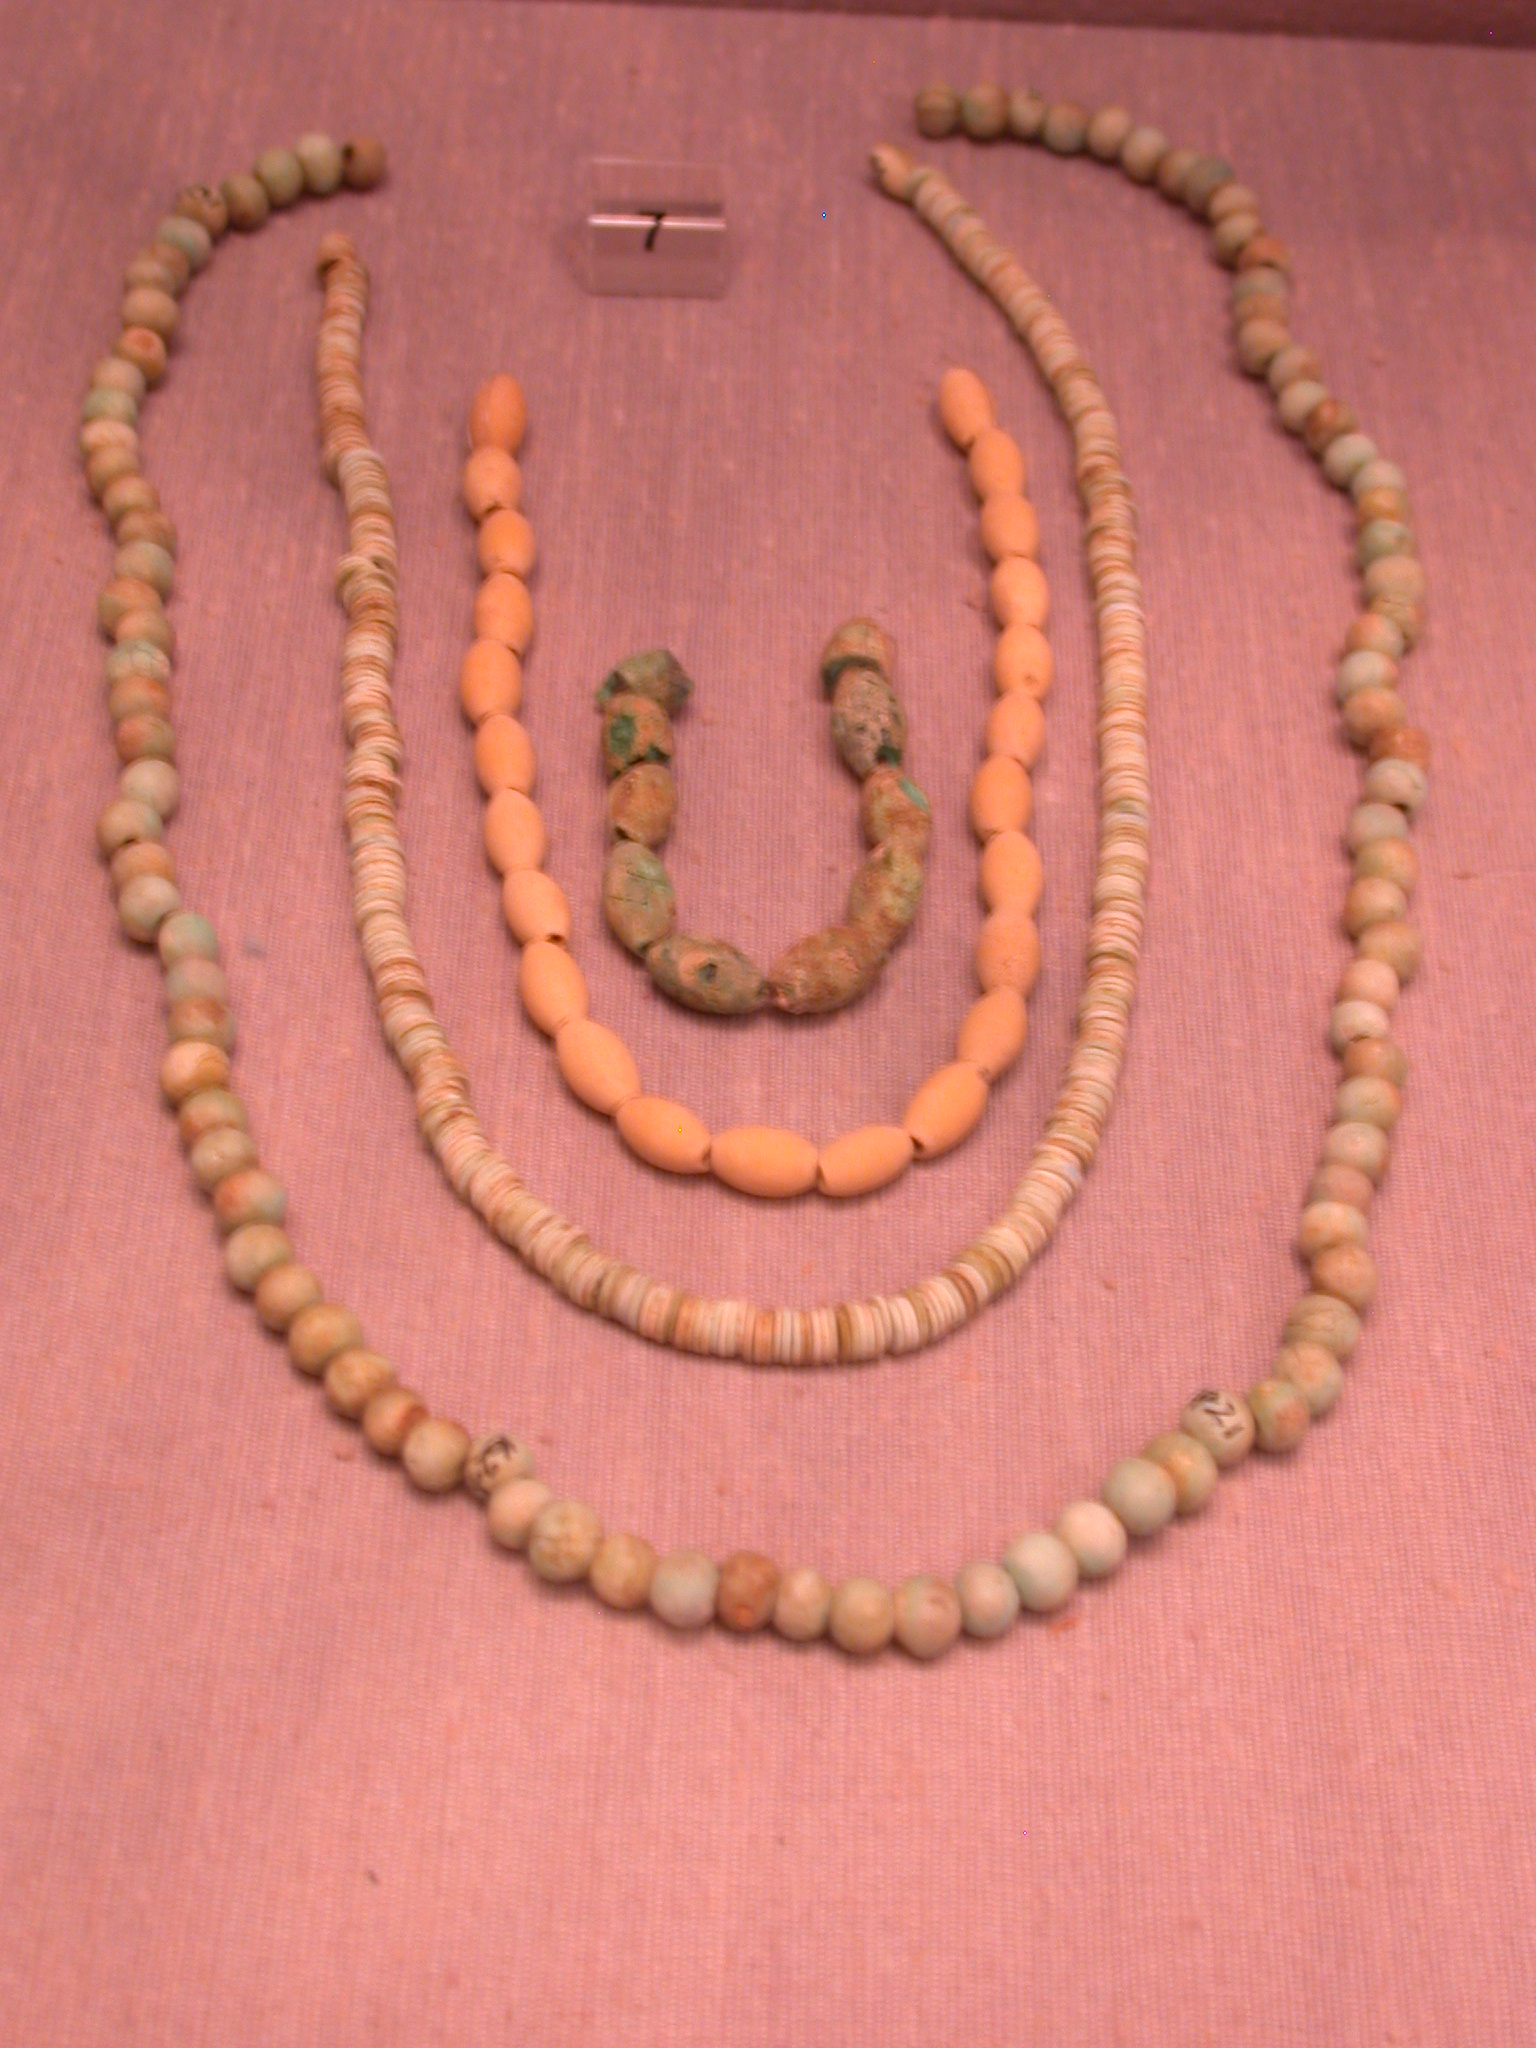 Glass, Faience, and Paste Necklaces, 25th Dynasty Sudan, Fitzwilliam Museum, Cambridge, England